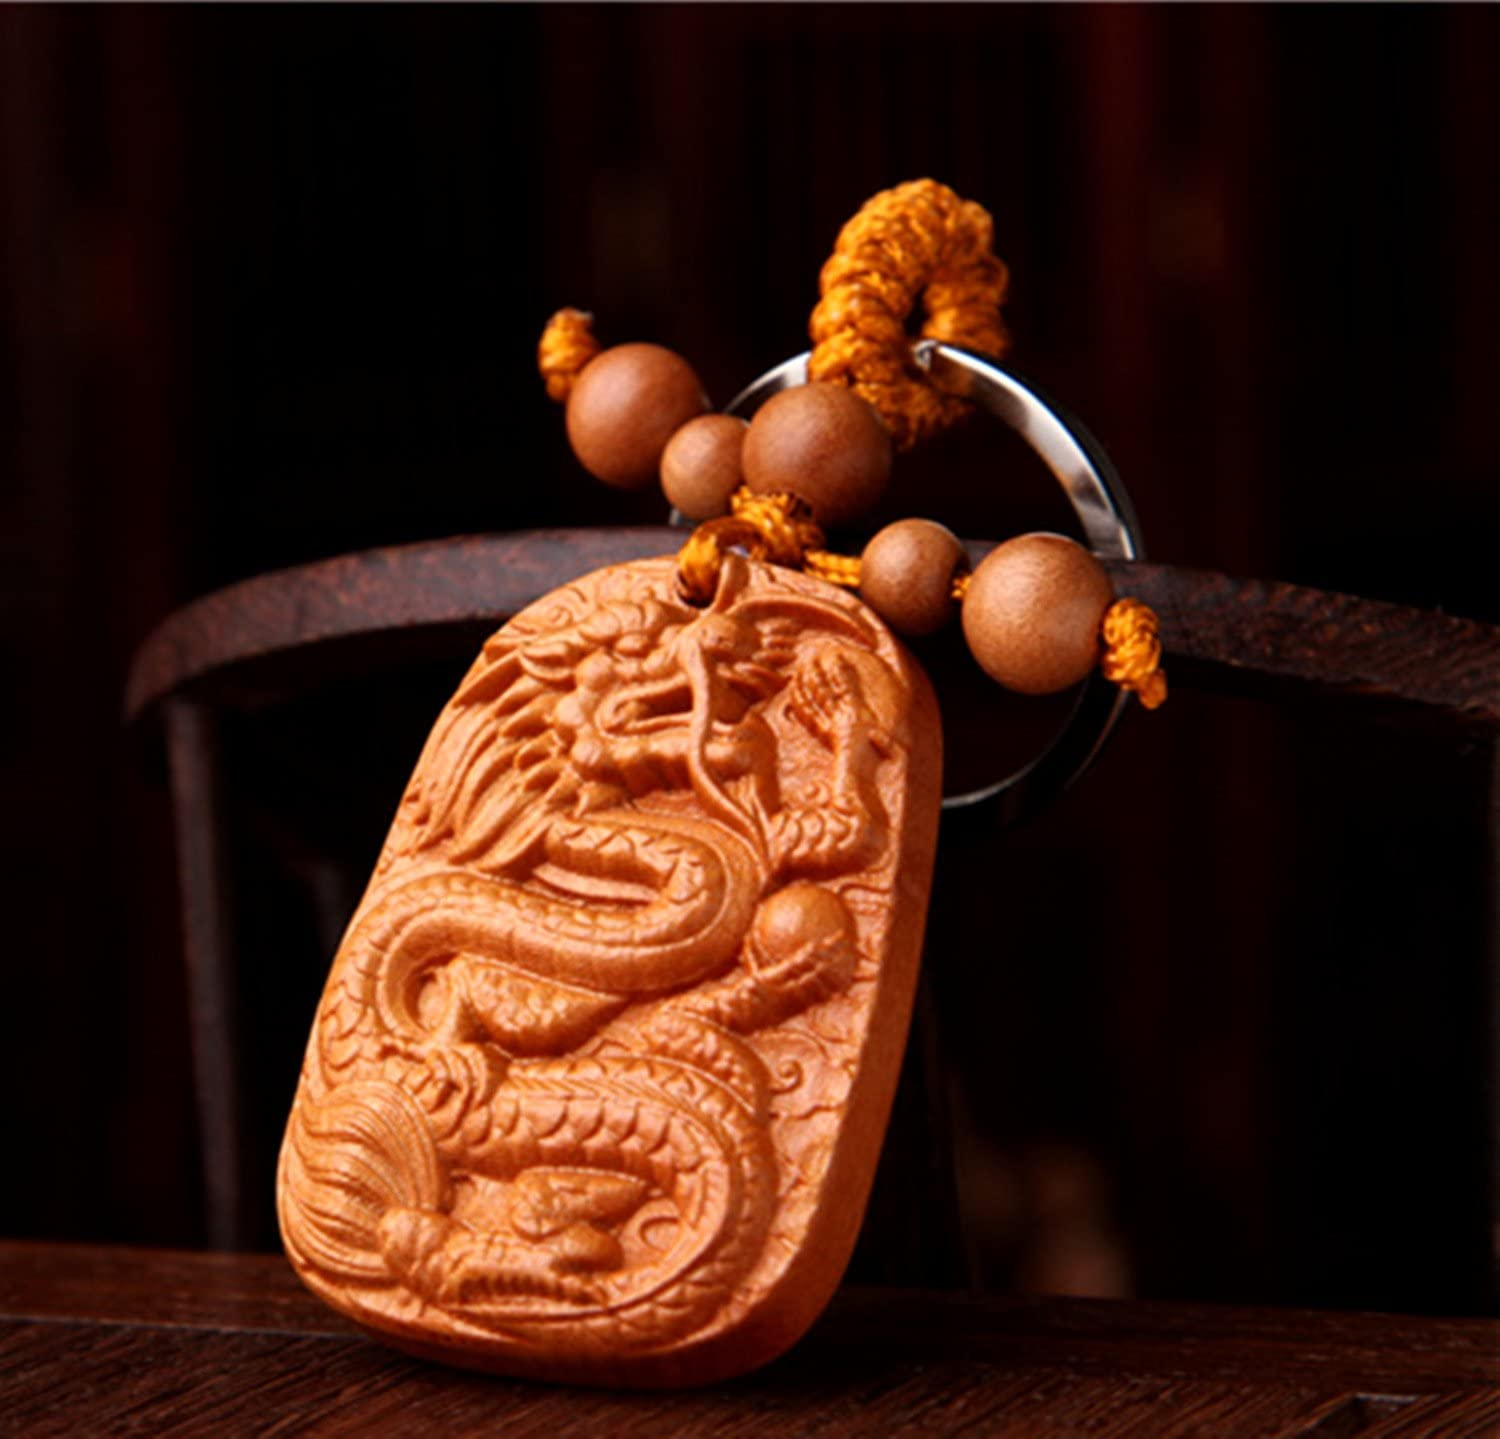 Betterdecor Feng Shui Handmade Peach Wood Carved Chinese Dragon Key Ring for Prosperity (with a Pouch)